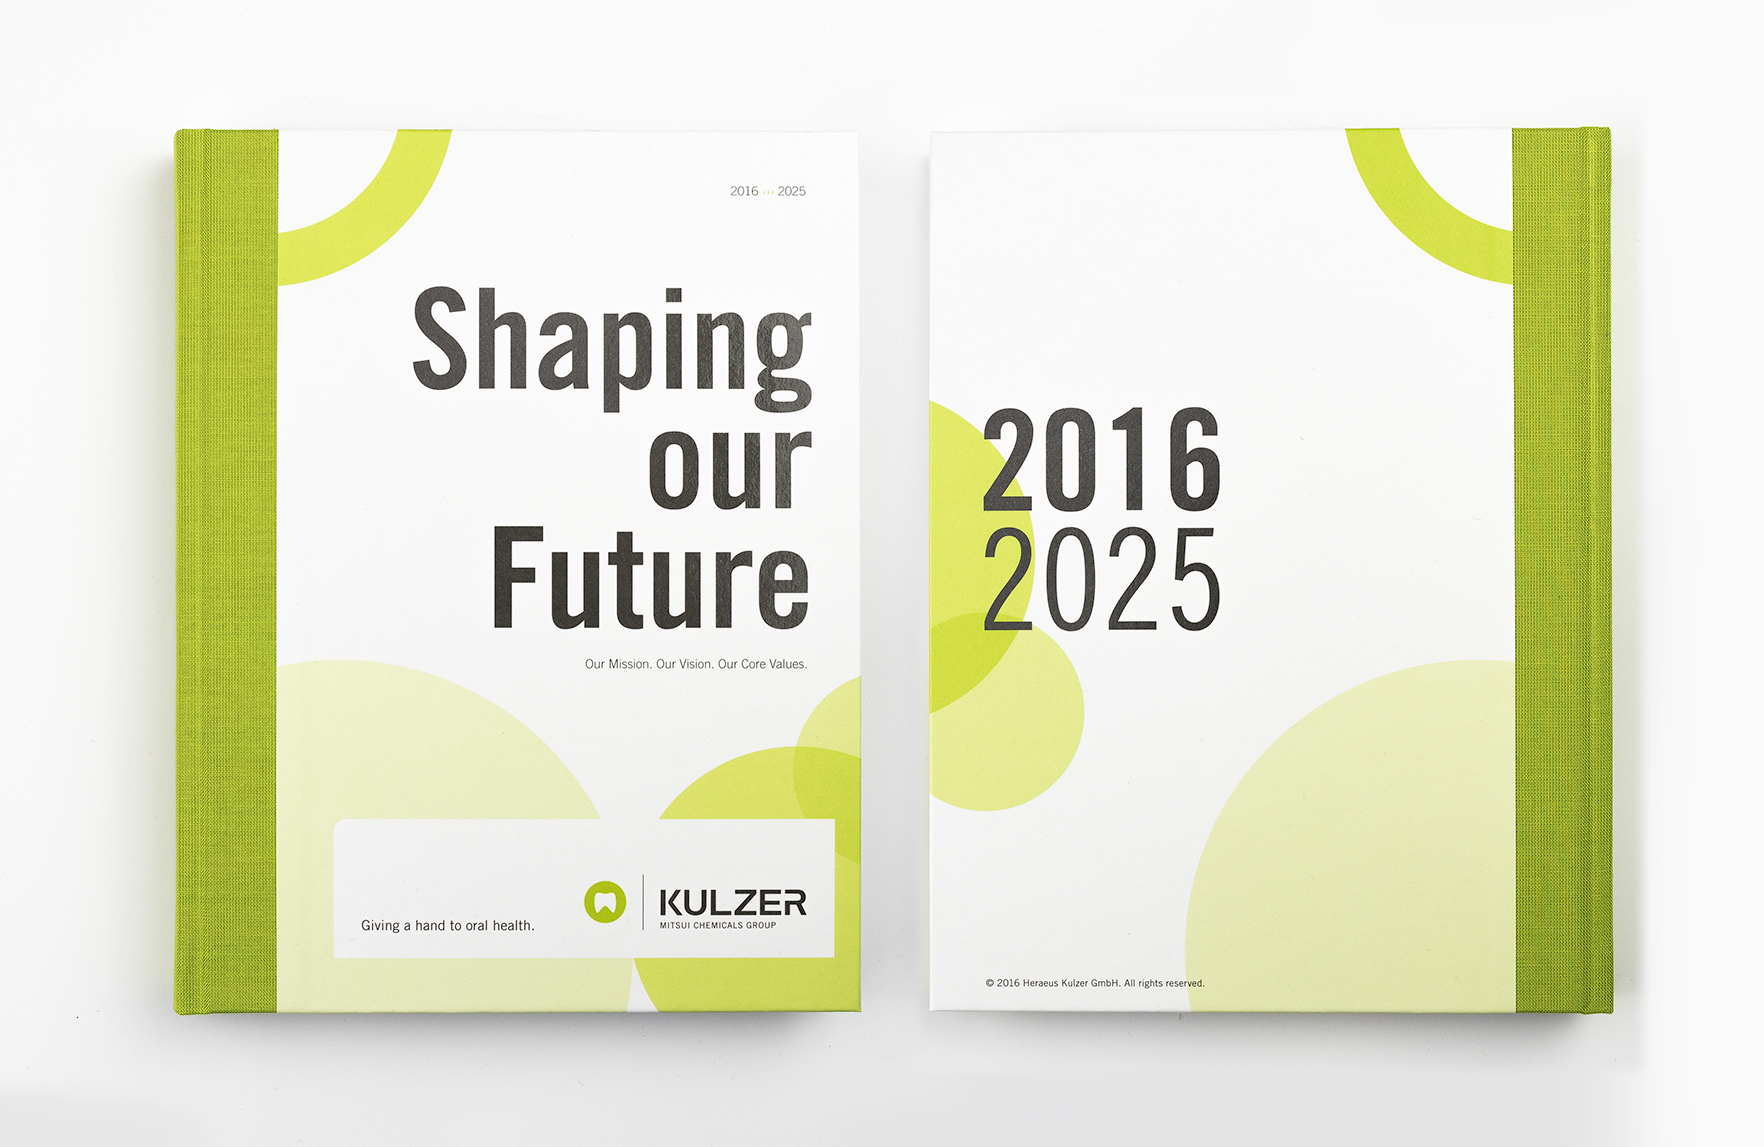 Shaping the Future. KULZER MITSUI CHEMICALS GROUP